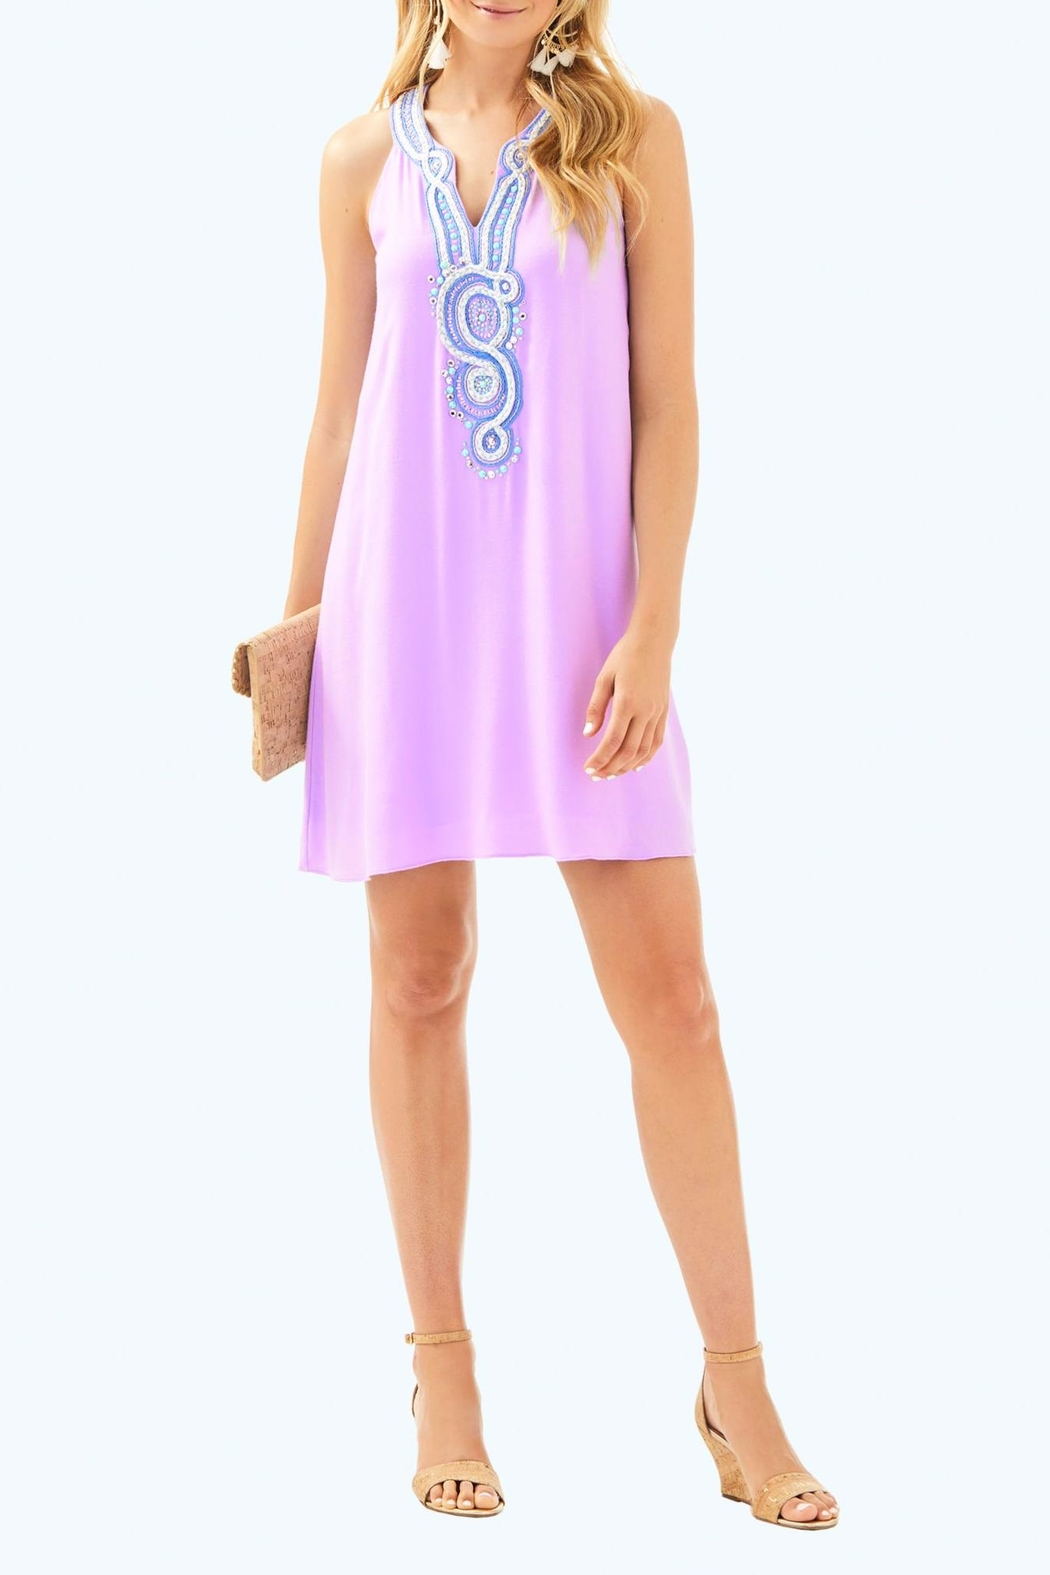 Lilly Pulitzer Valli Soft-Shift Dress - Back Cropped Image